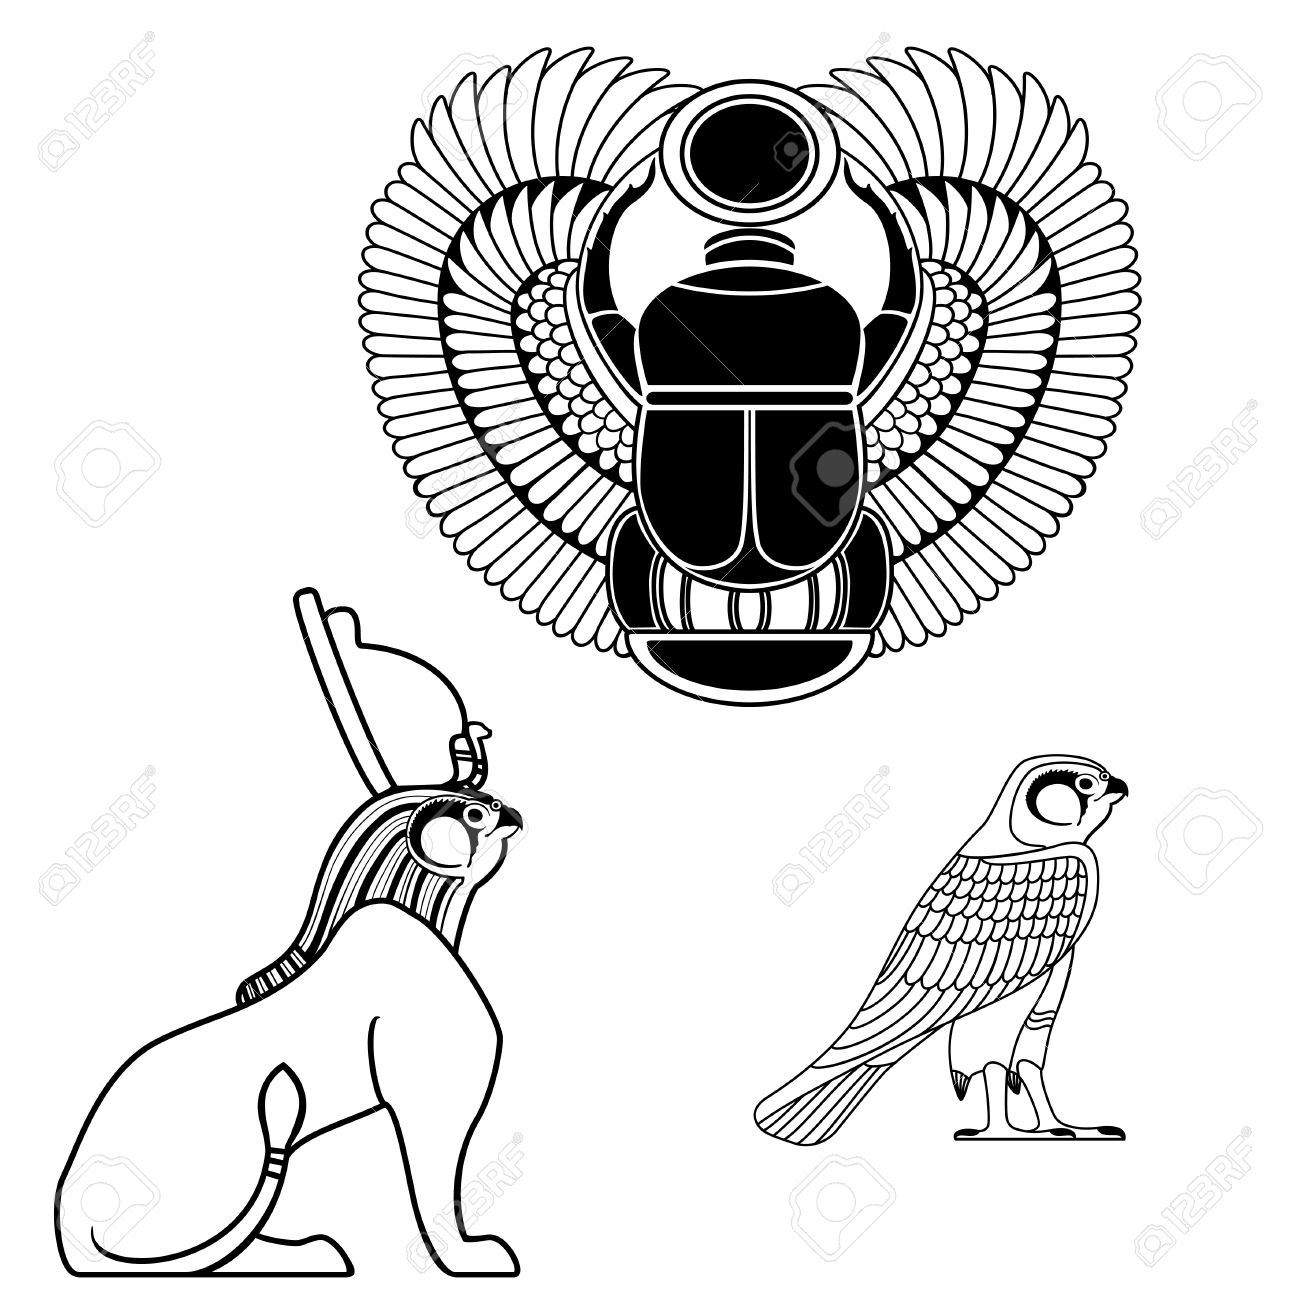 Egyptian Style Drawing At Getdrawings Free For Personal Use